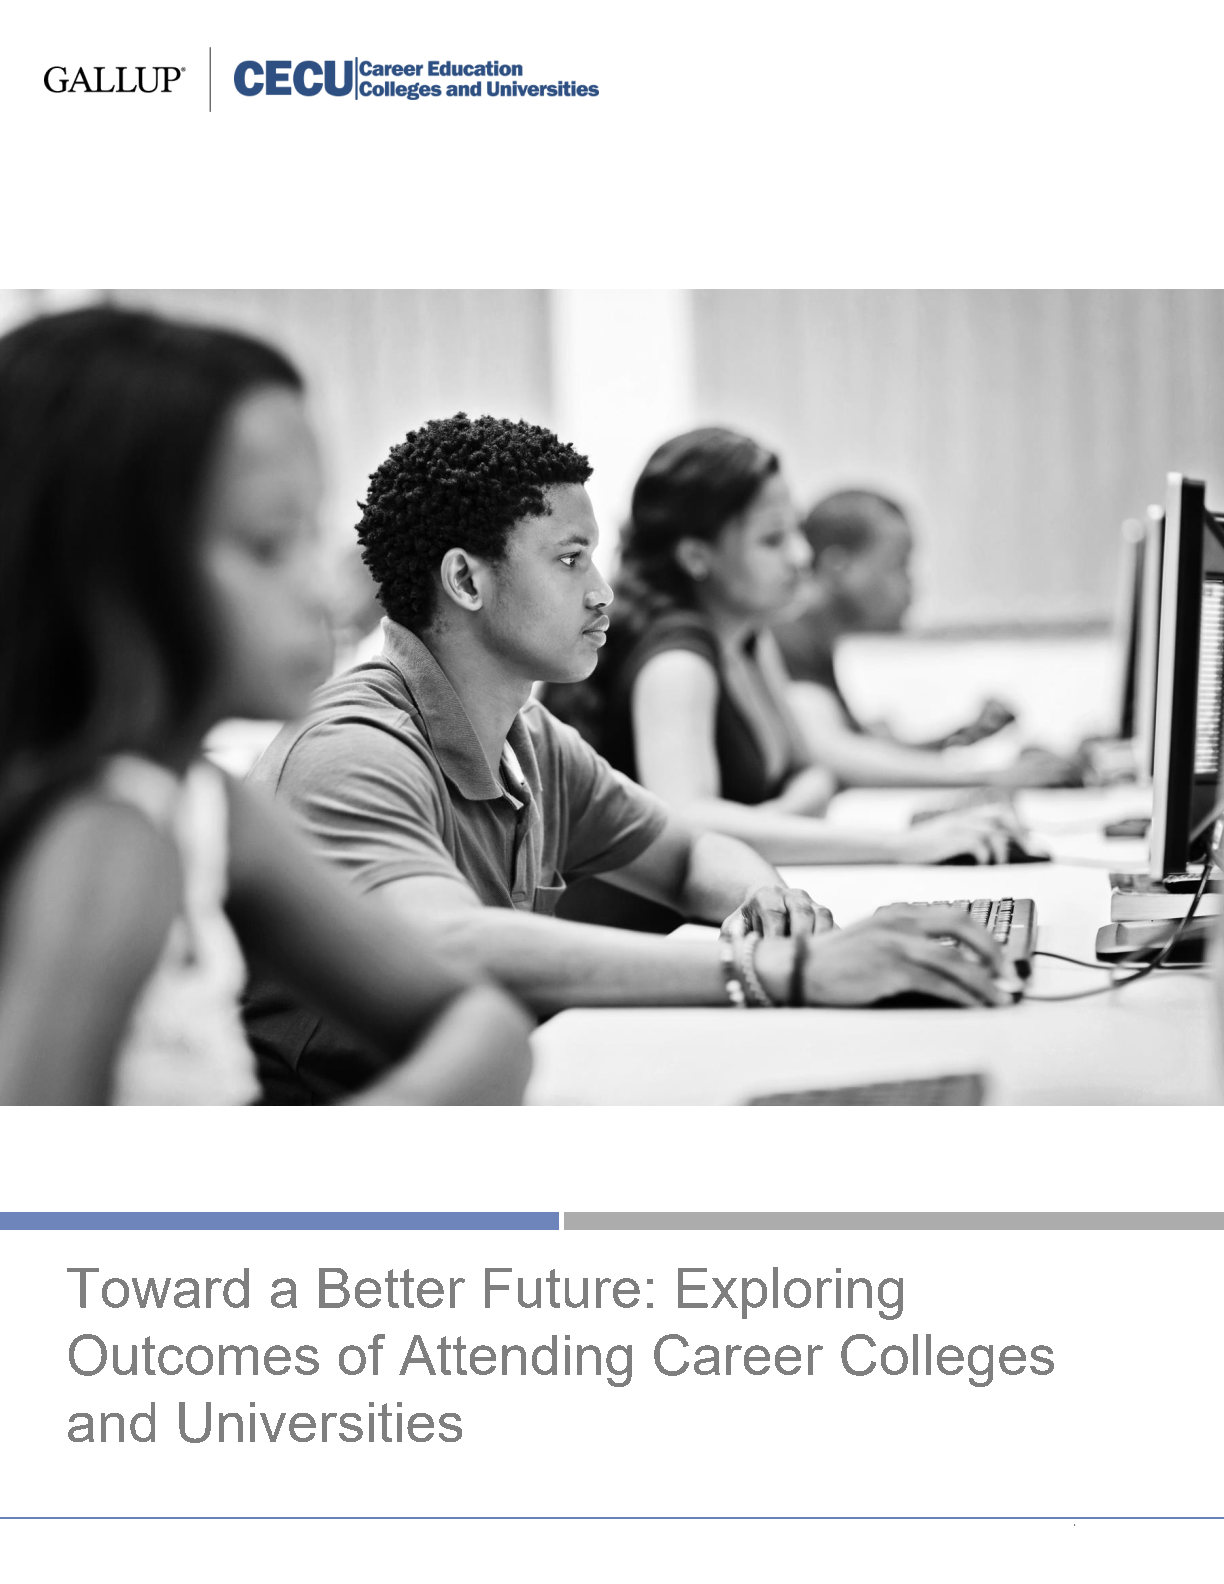 Toward a Better Future: Exploring Outcomes of Attending Career Colleges and Universities